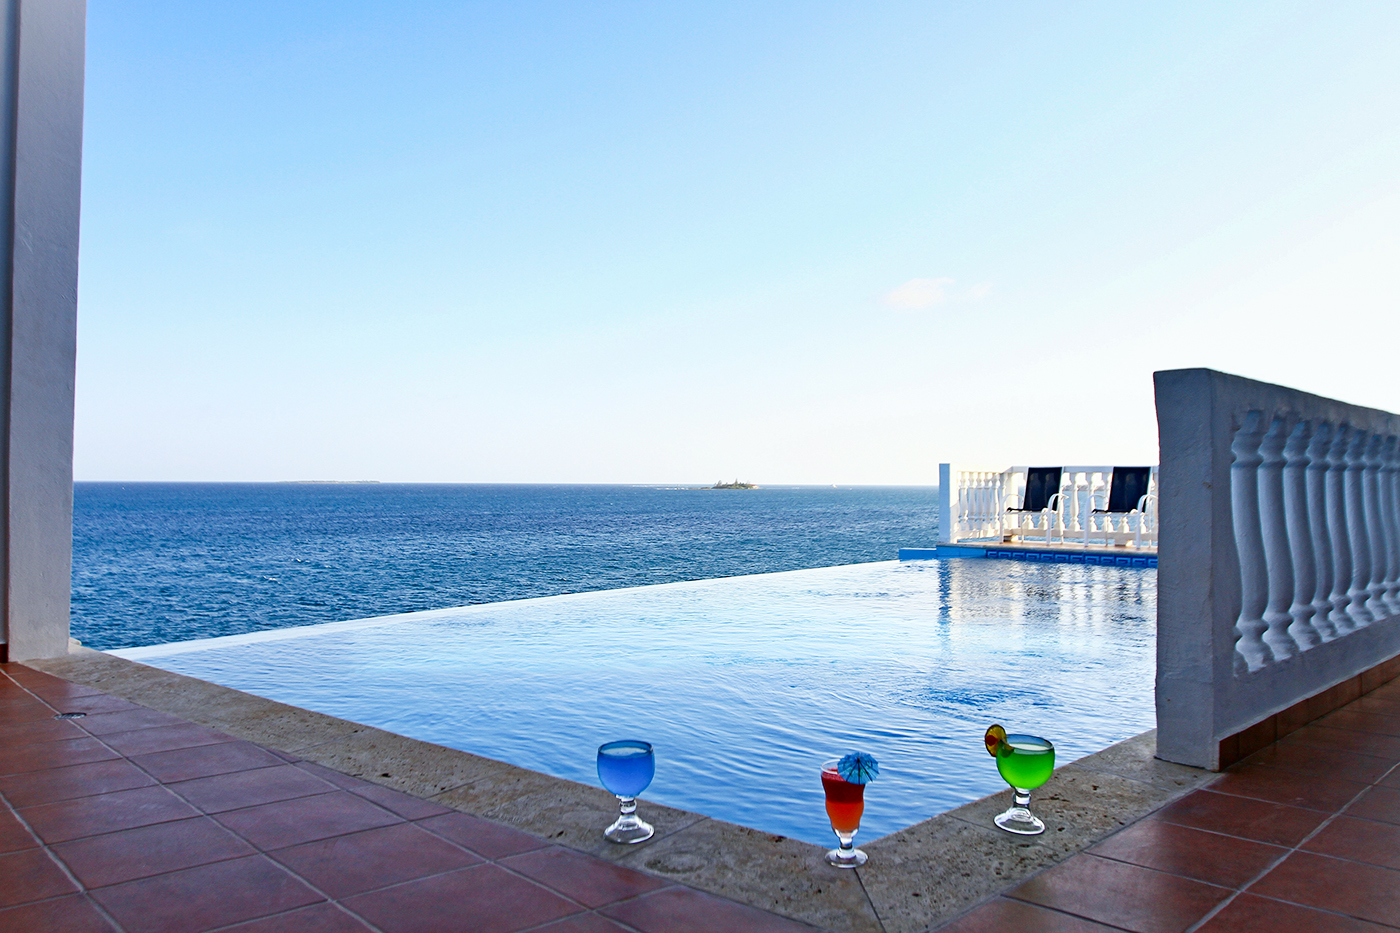 Dunbar Rock's infinity-edge pool perches on the edge of an elevated deck, adding visual drama to a cooling dip.